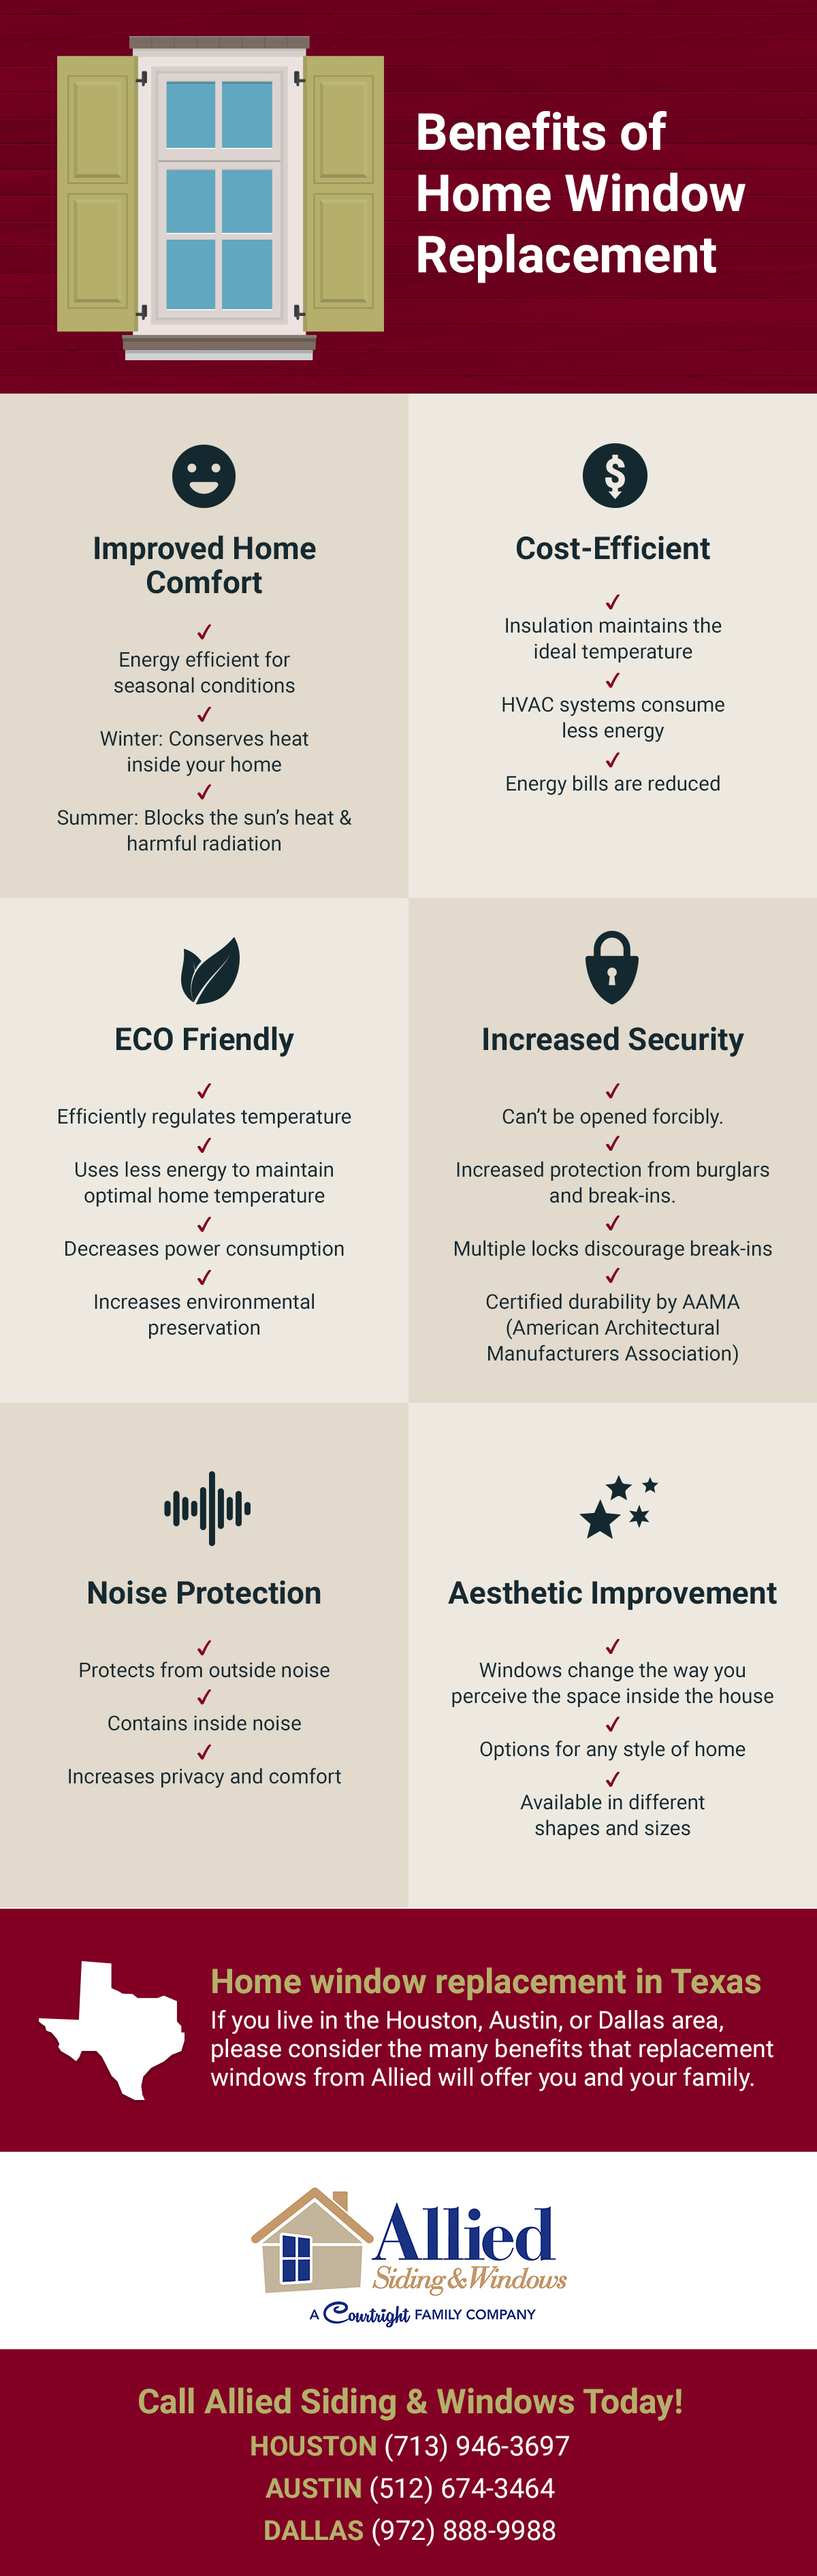 Benefits-of-Home-Window-Replacement-Infographic